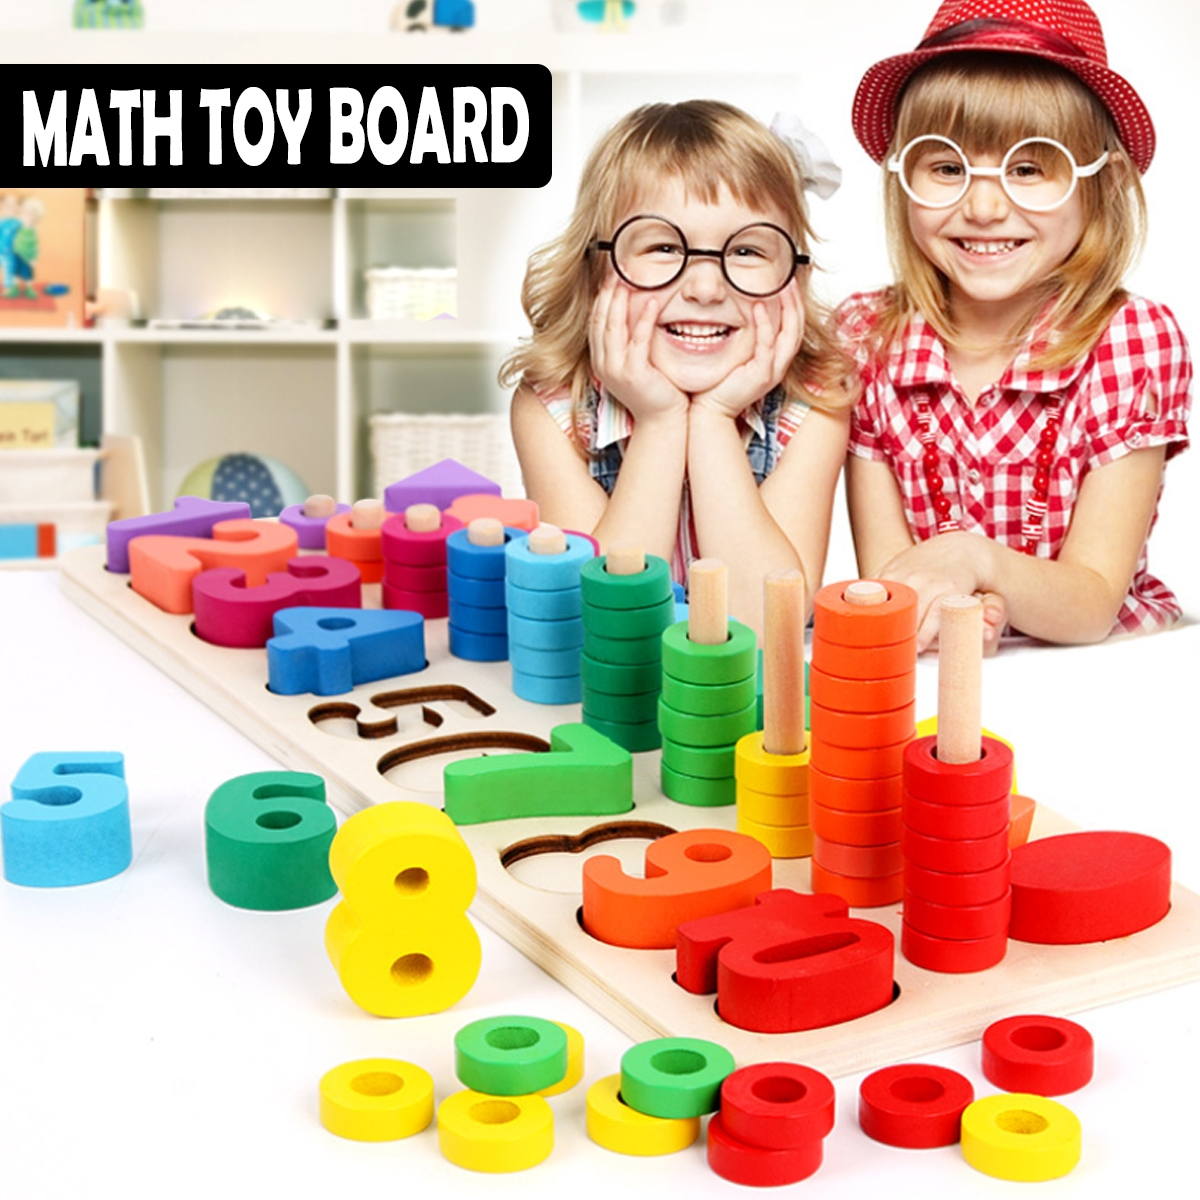 Wooden Math Toy Board Montessori Counting Board Preschool Learning Toys for Children Gifts